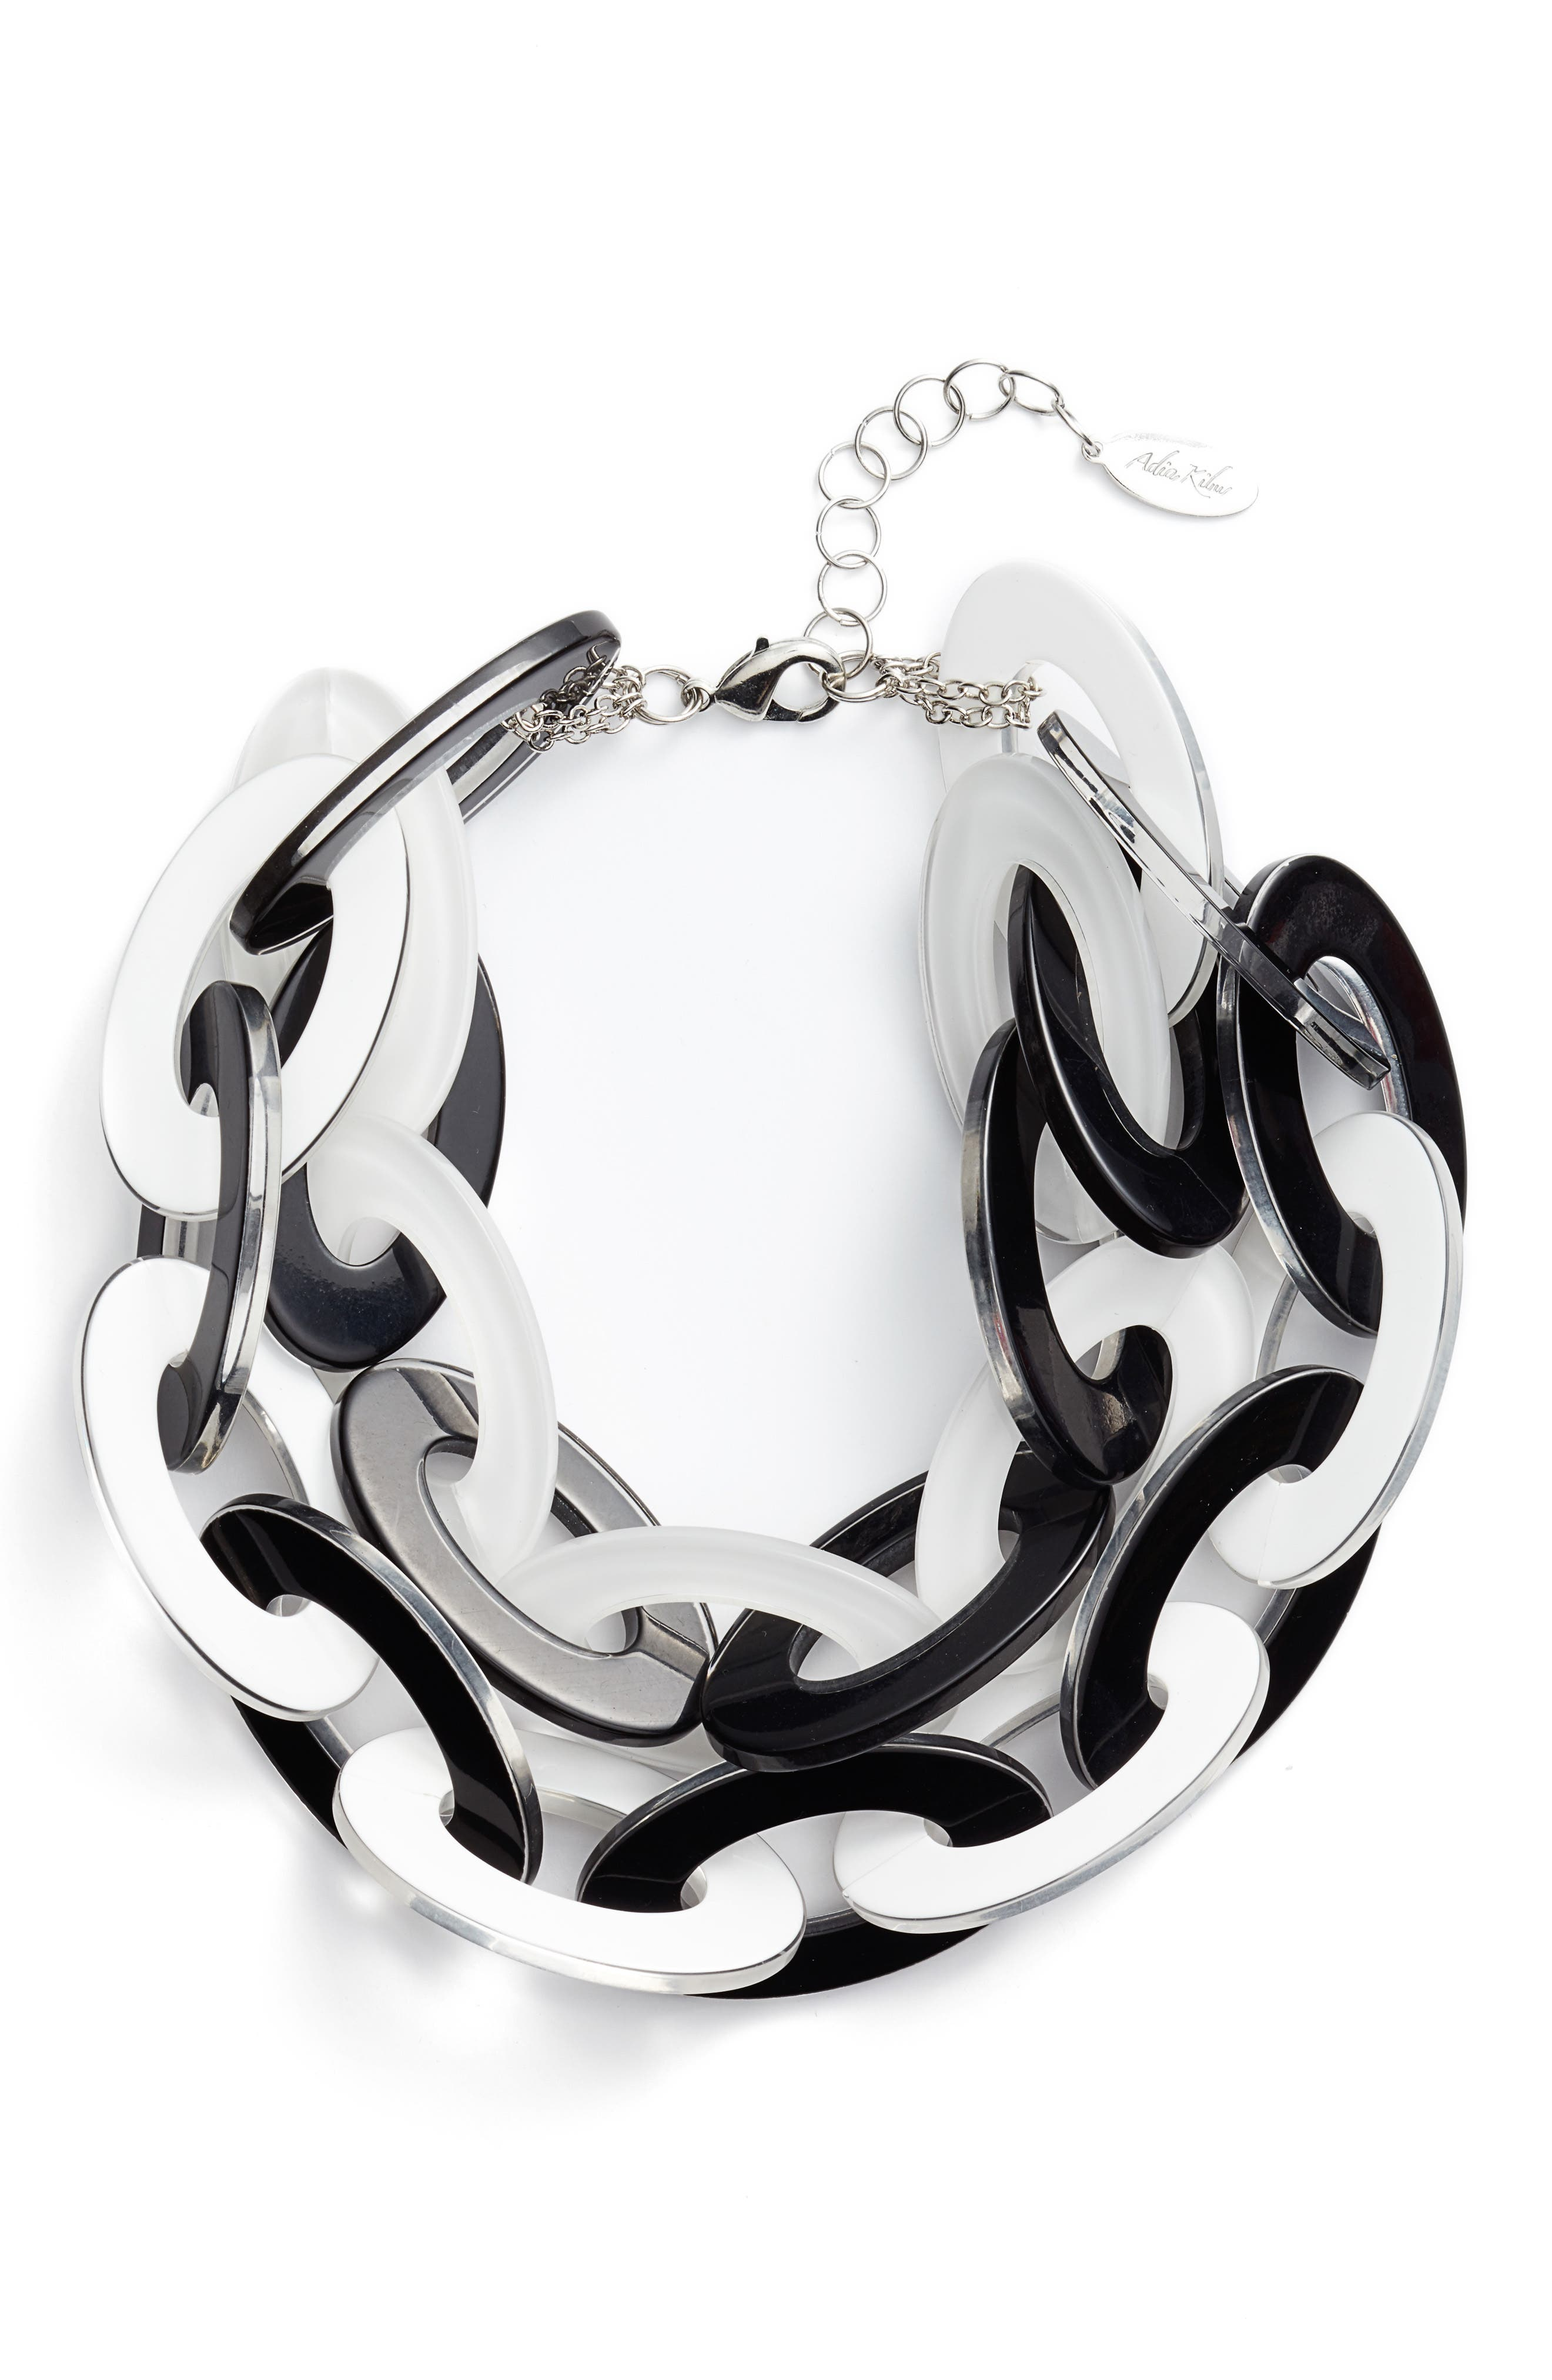 Resin Link Necklace,                             Main thumbnail 1, color,                             Black/ White